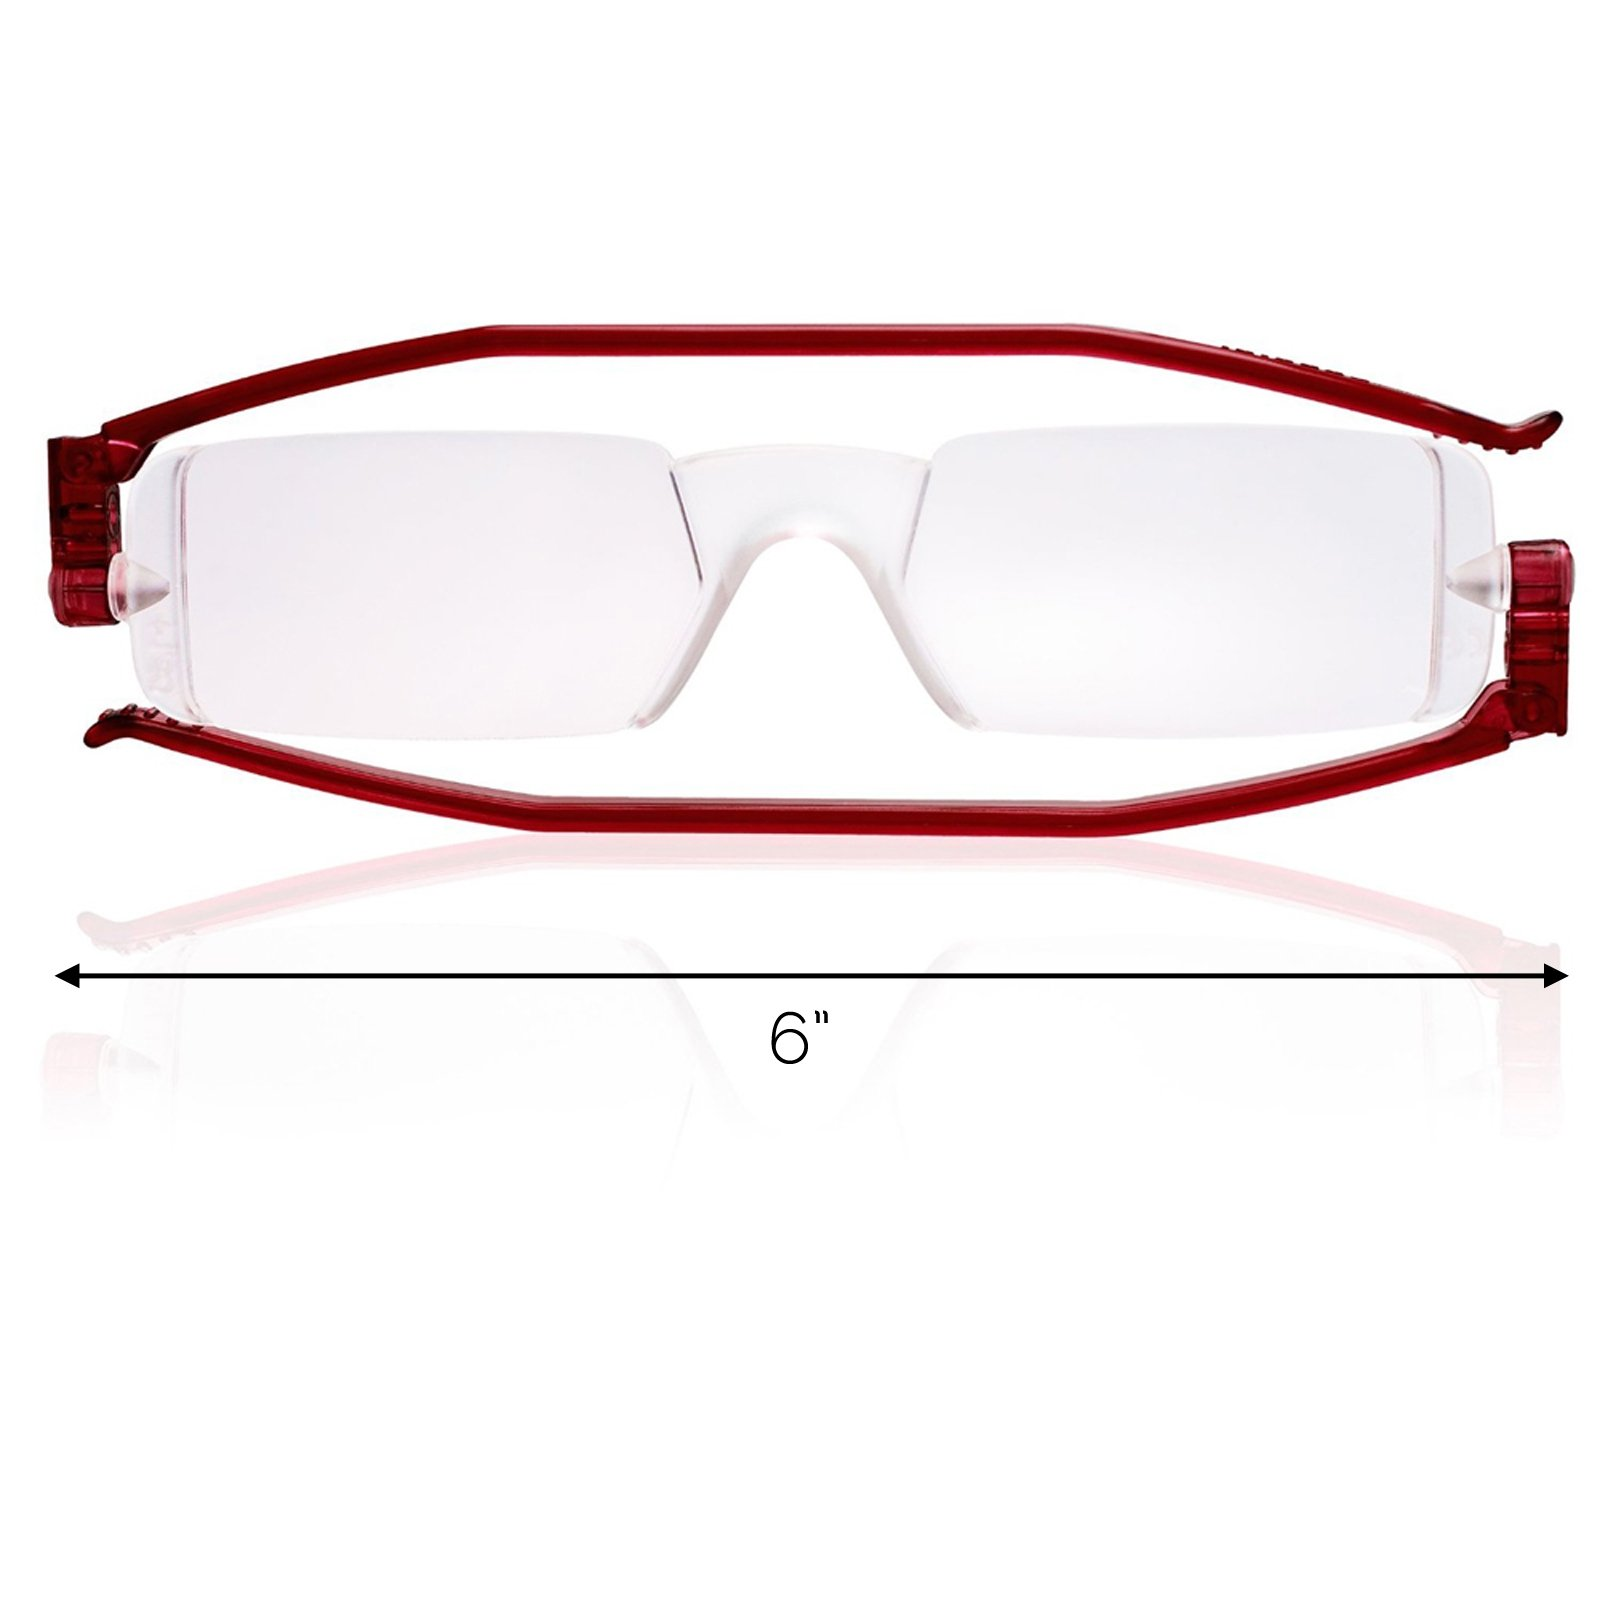 Reading Glasses Nannini Italy Vision Care Unisex Ultra Thin Readers - Red 1.5